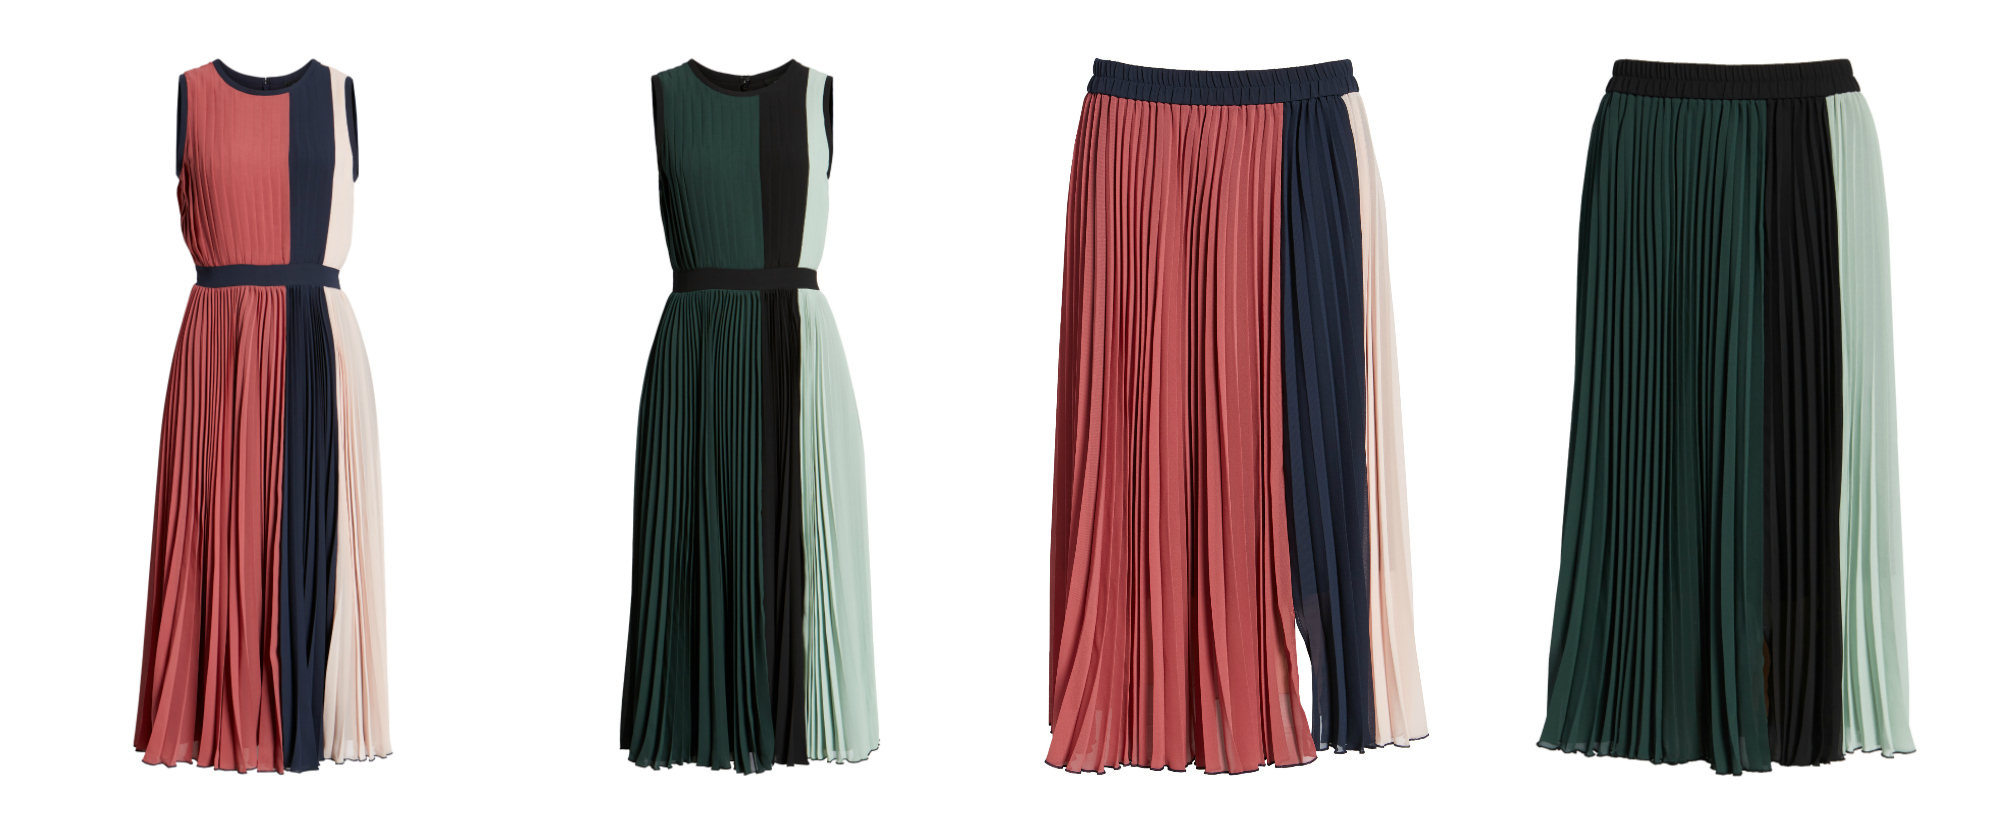 Atlantic_Pacific_Halogen_nordstrom_blair_eadie_fashion_blogger_capsule_collection_fall_october_2018_winter_colorblock_dress_skirt.jpg